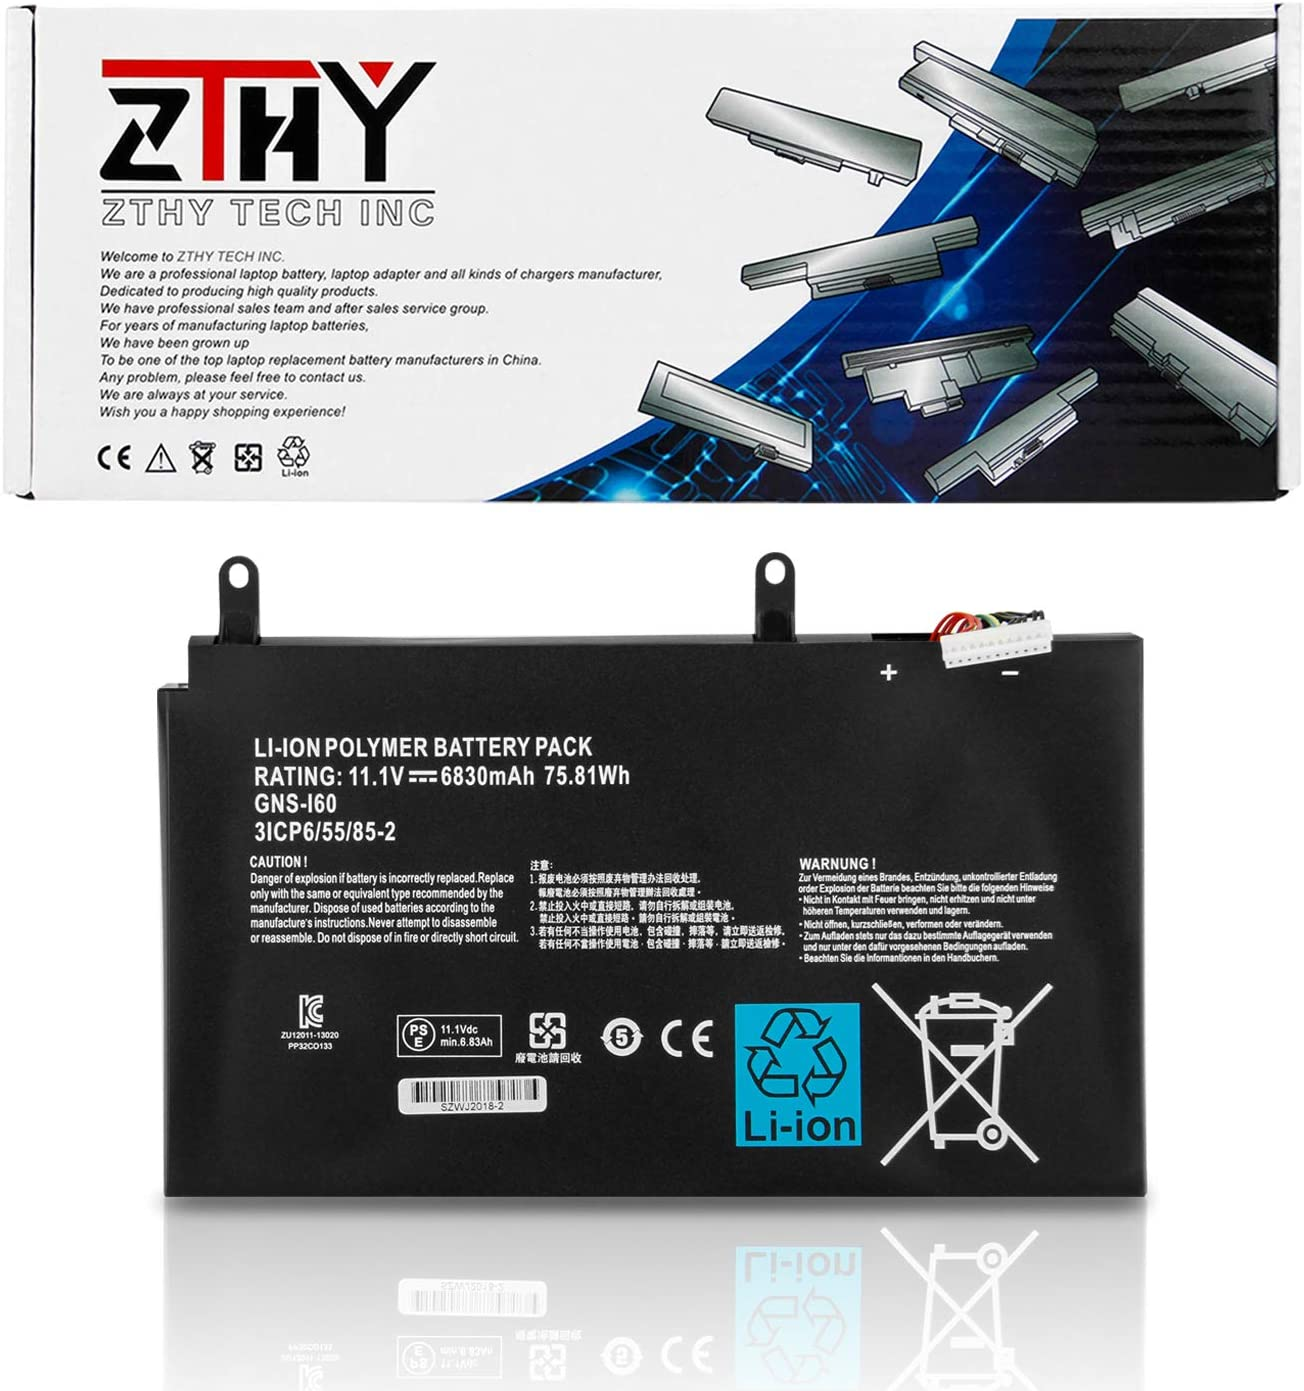 ZTHY New GNS-I60 Battery Replacement for Gigabyte P35G P35K P35W P35X P37K P37W P37X P57W P57X v2 v3 v4 v5 v6 v7 Series Gaming Laptop Fit 961TA010FA GNS-160 11.1V 75.81Wh 6830mAh 6Cell